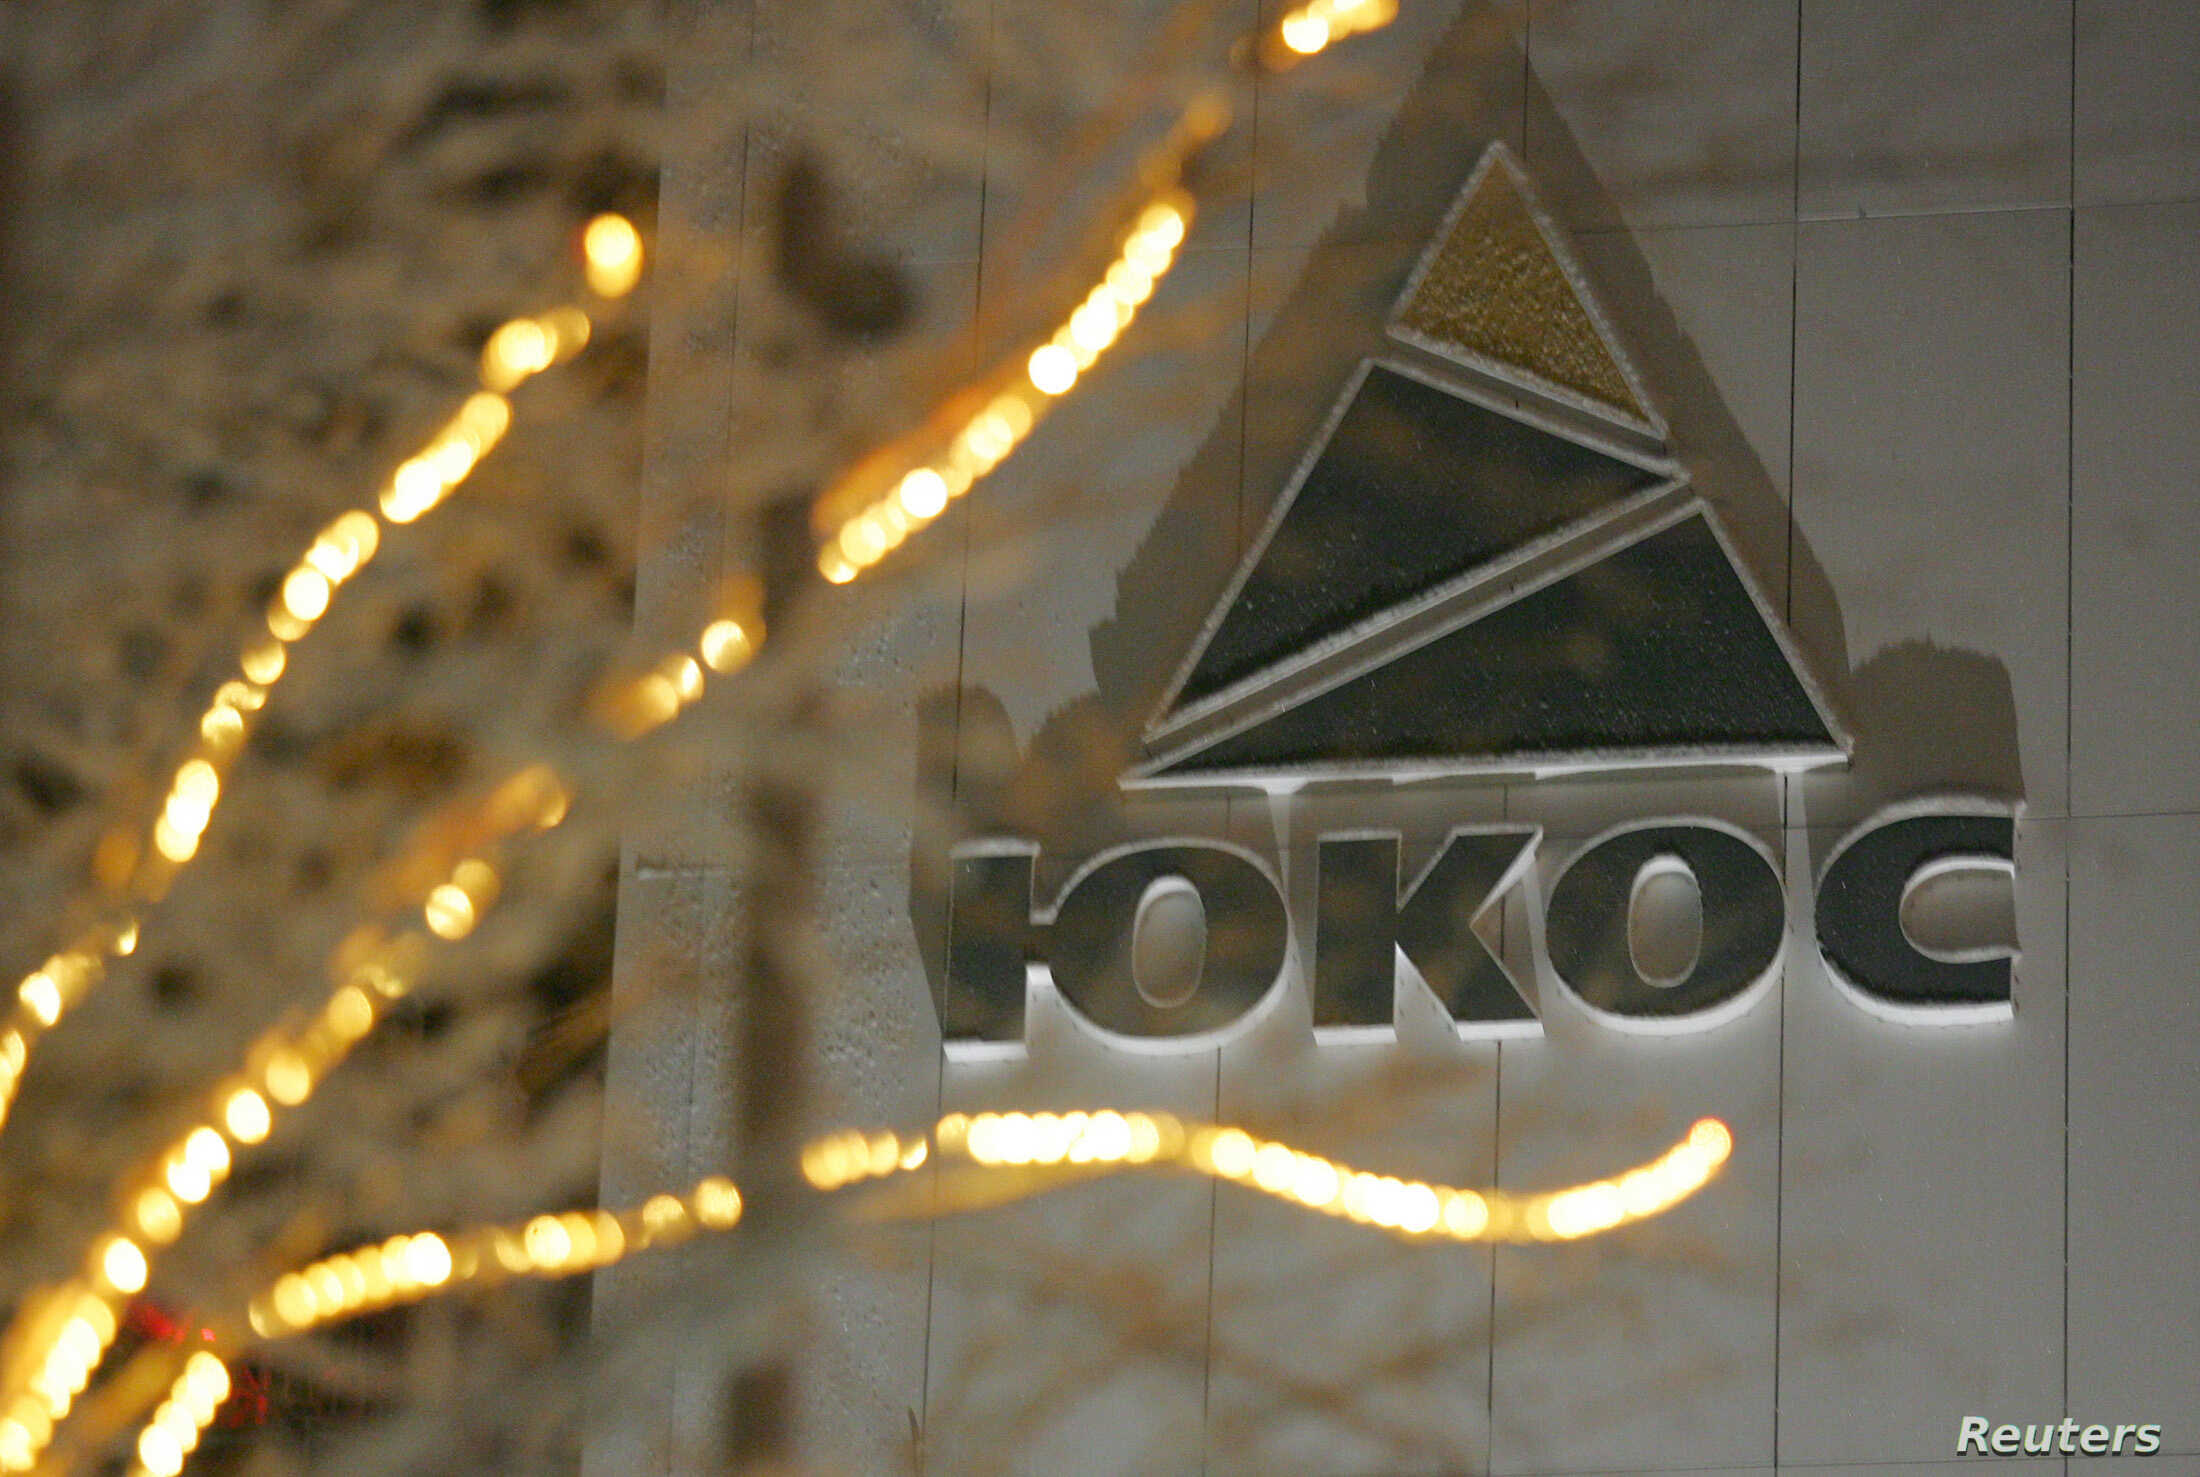 Court Reinstates Order for Russian Federation to Pay $50 Billion Over Yukos